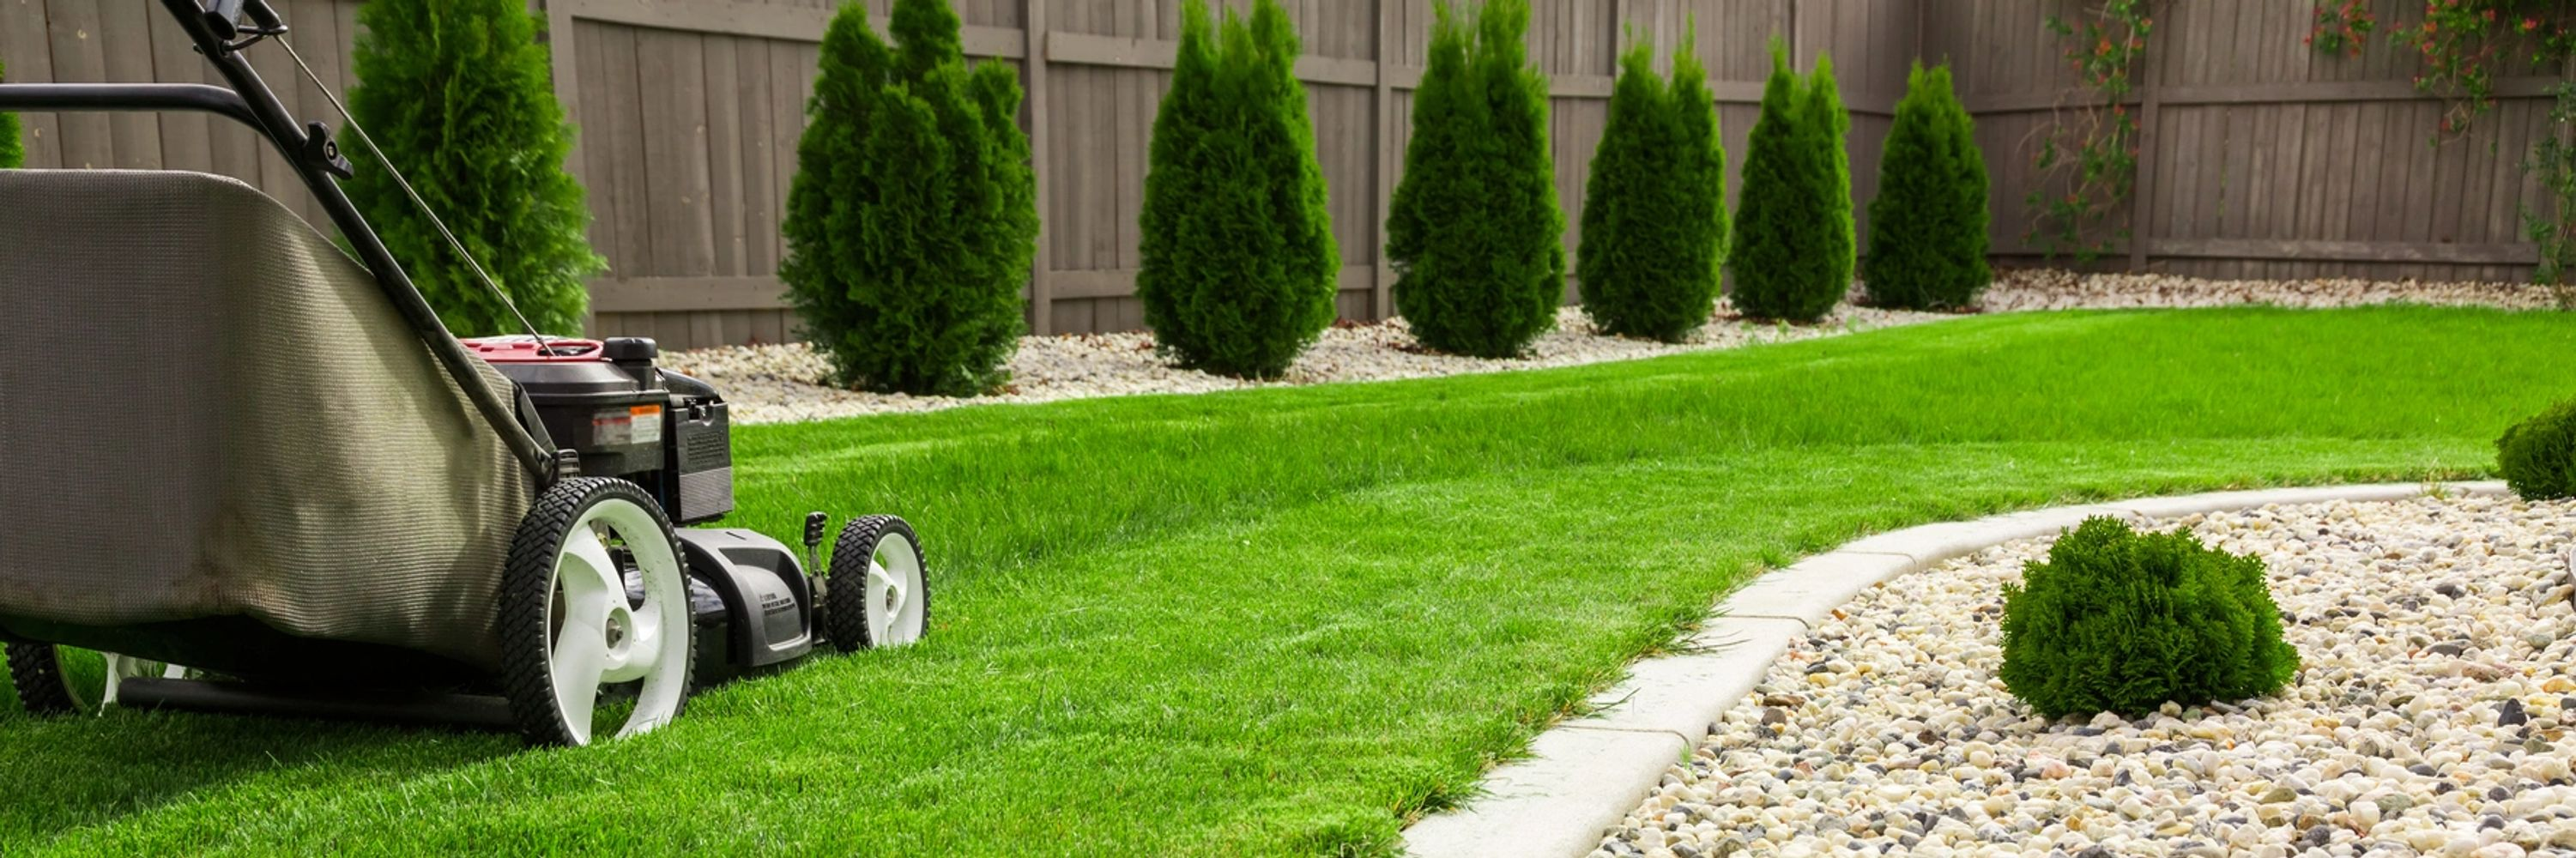 Lawn Colorant Beautiful Yard with Lush Turf from Organic Long Lasting Pigment sprays.